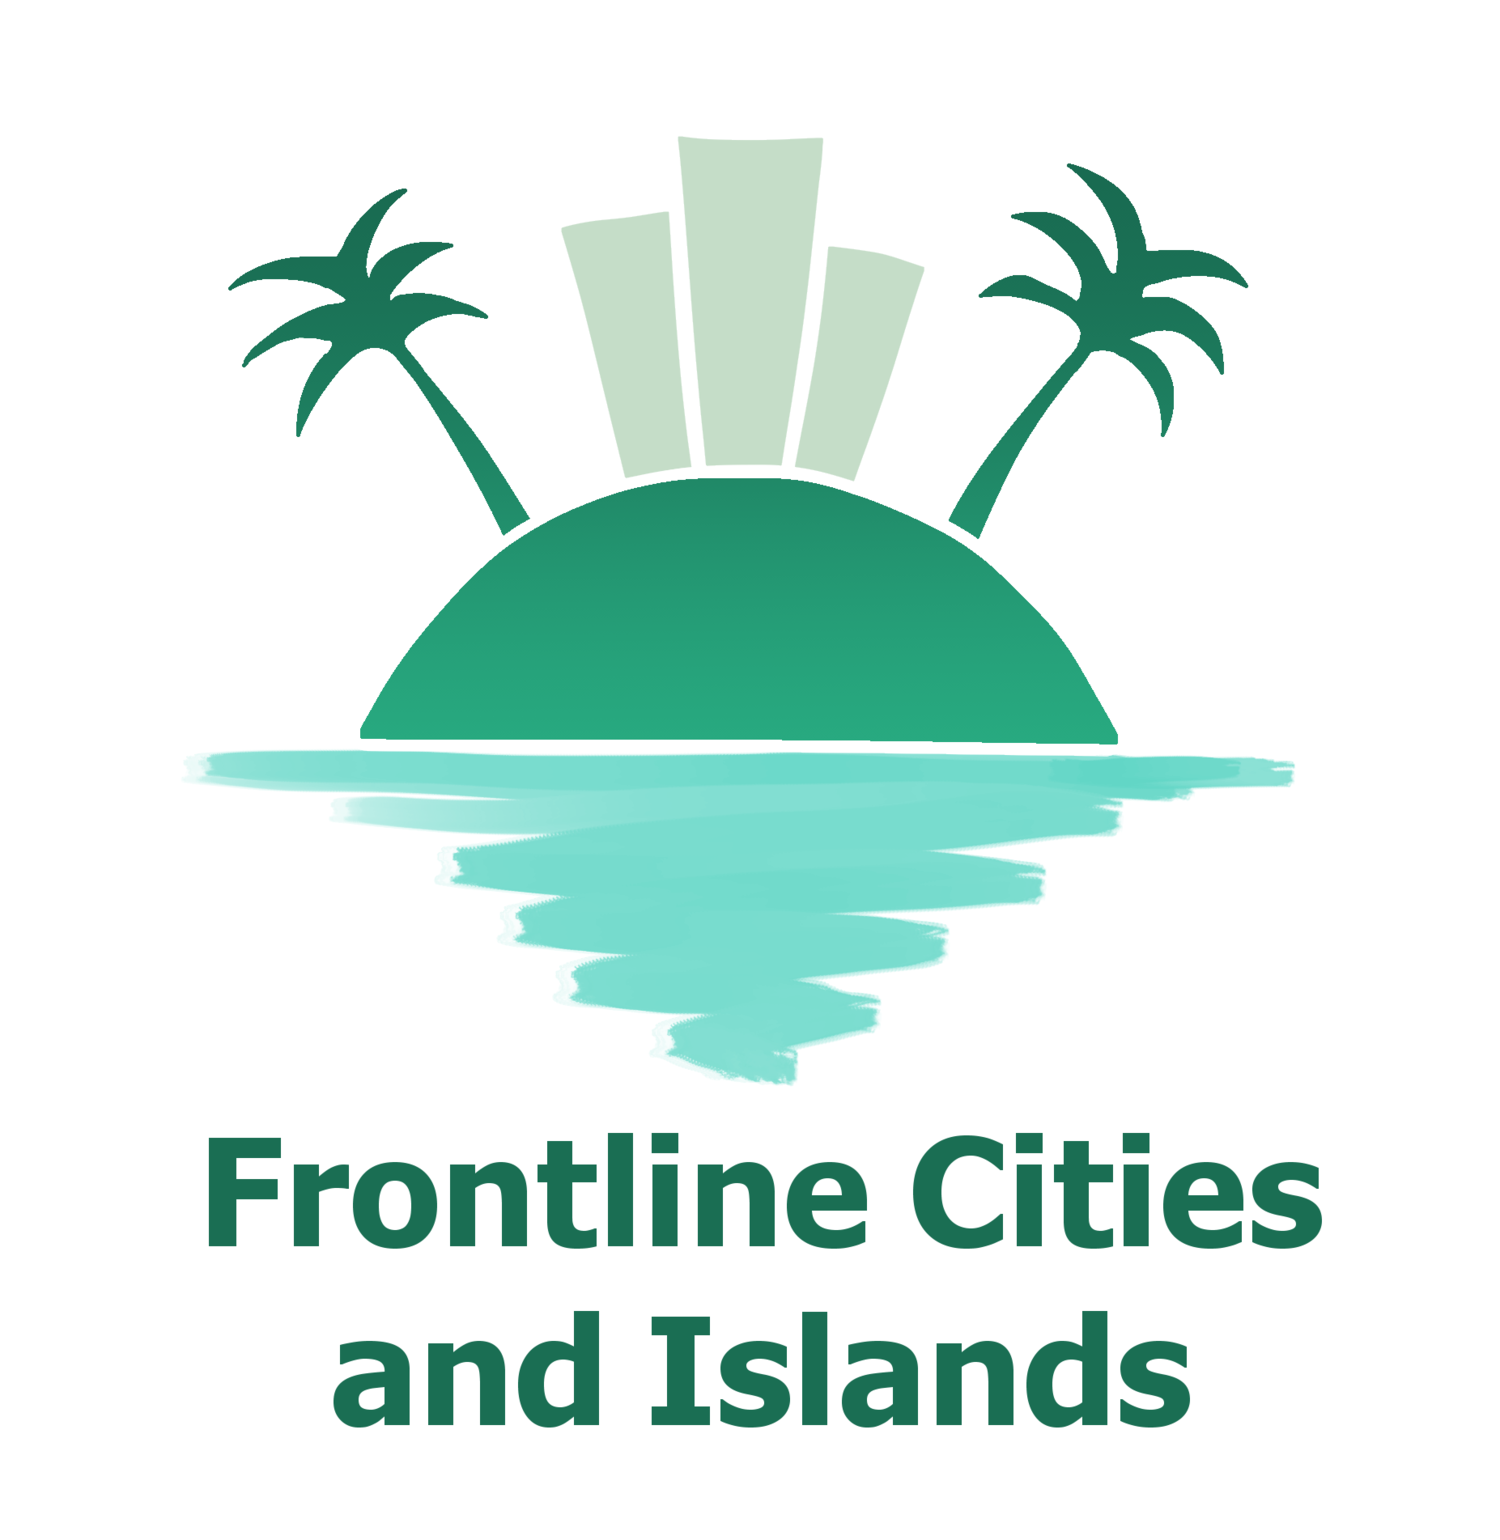 Frontline Cities & Islands